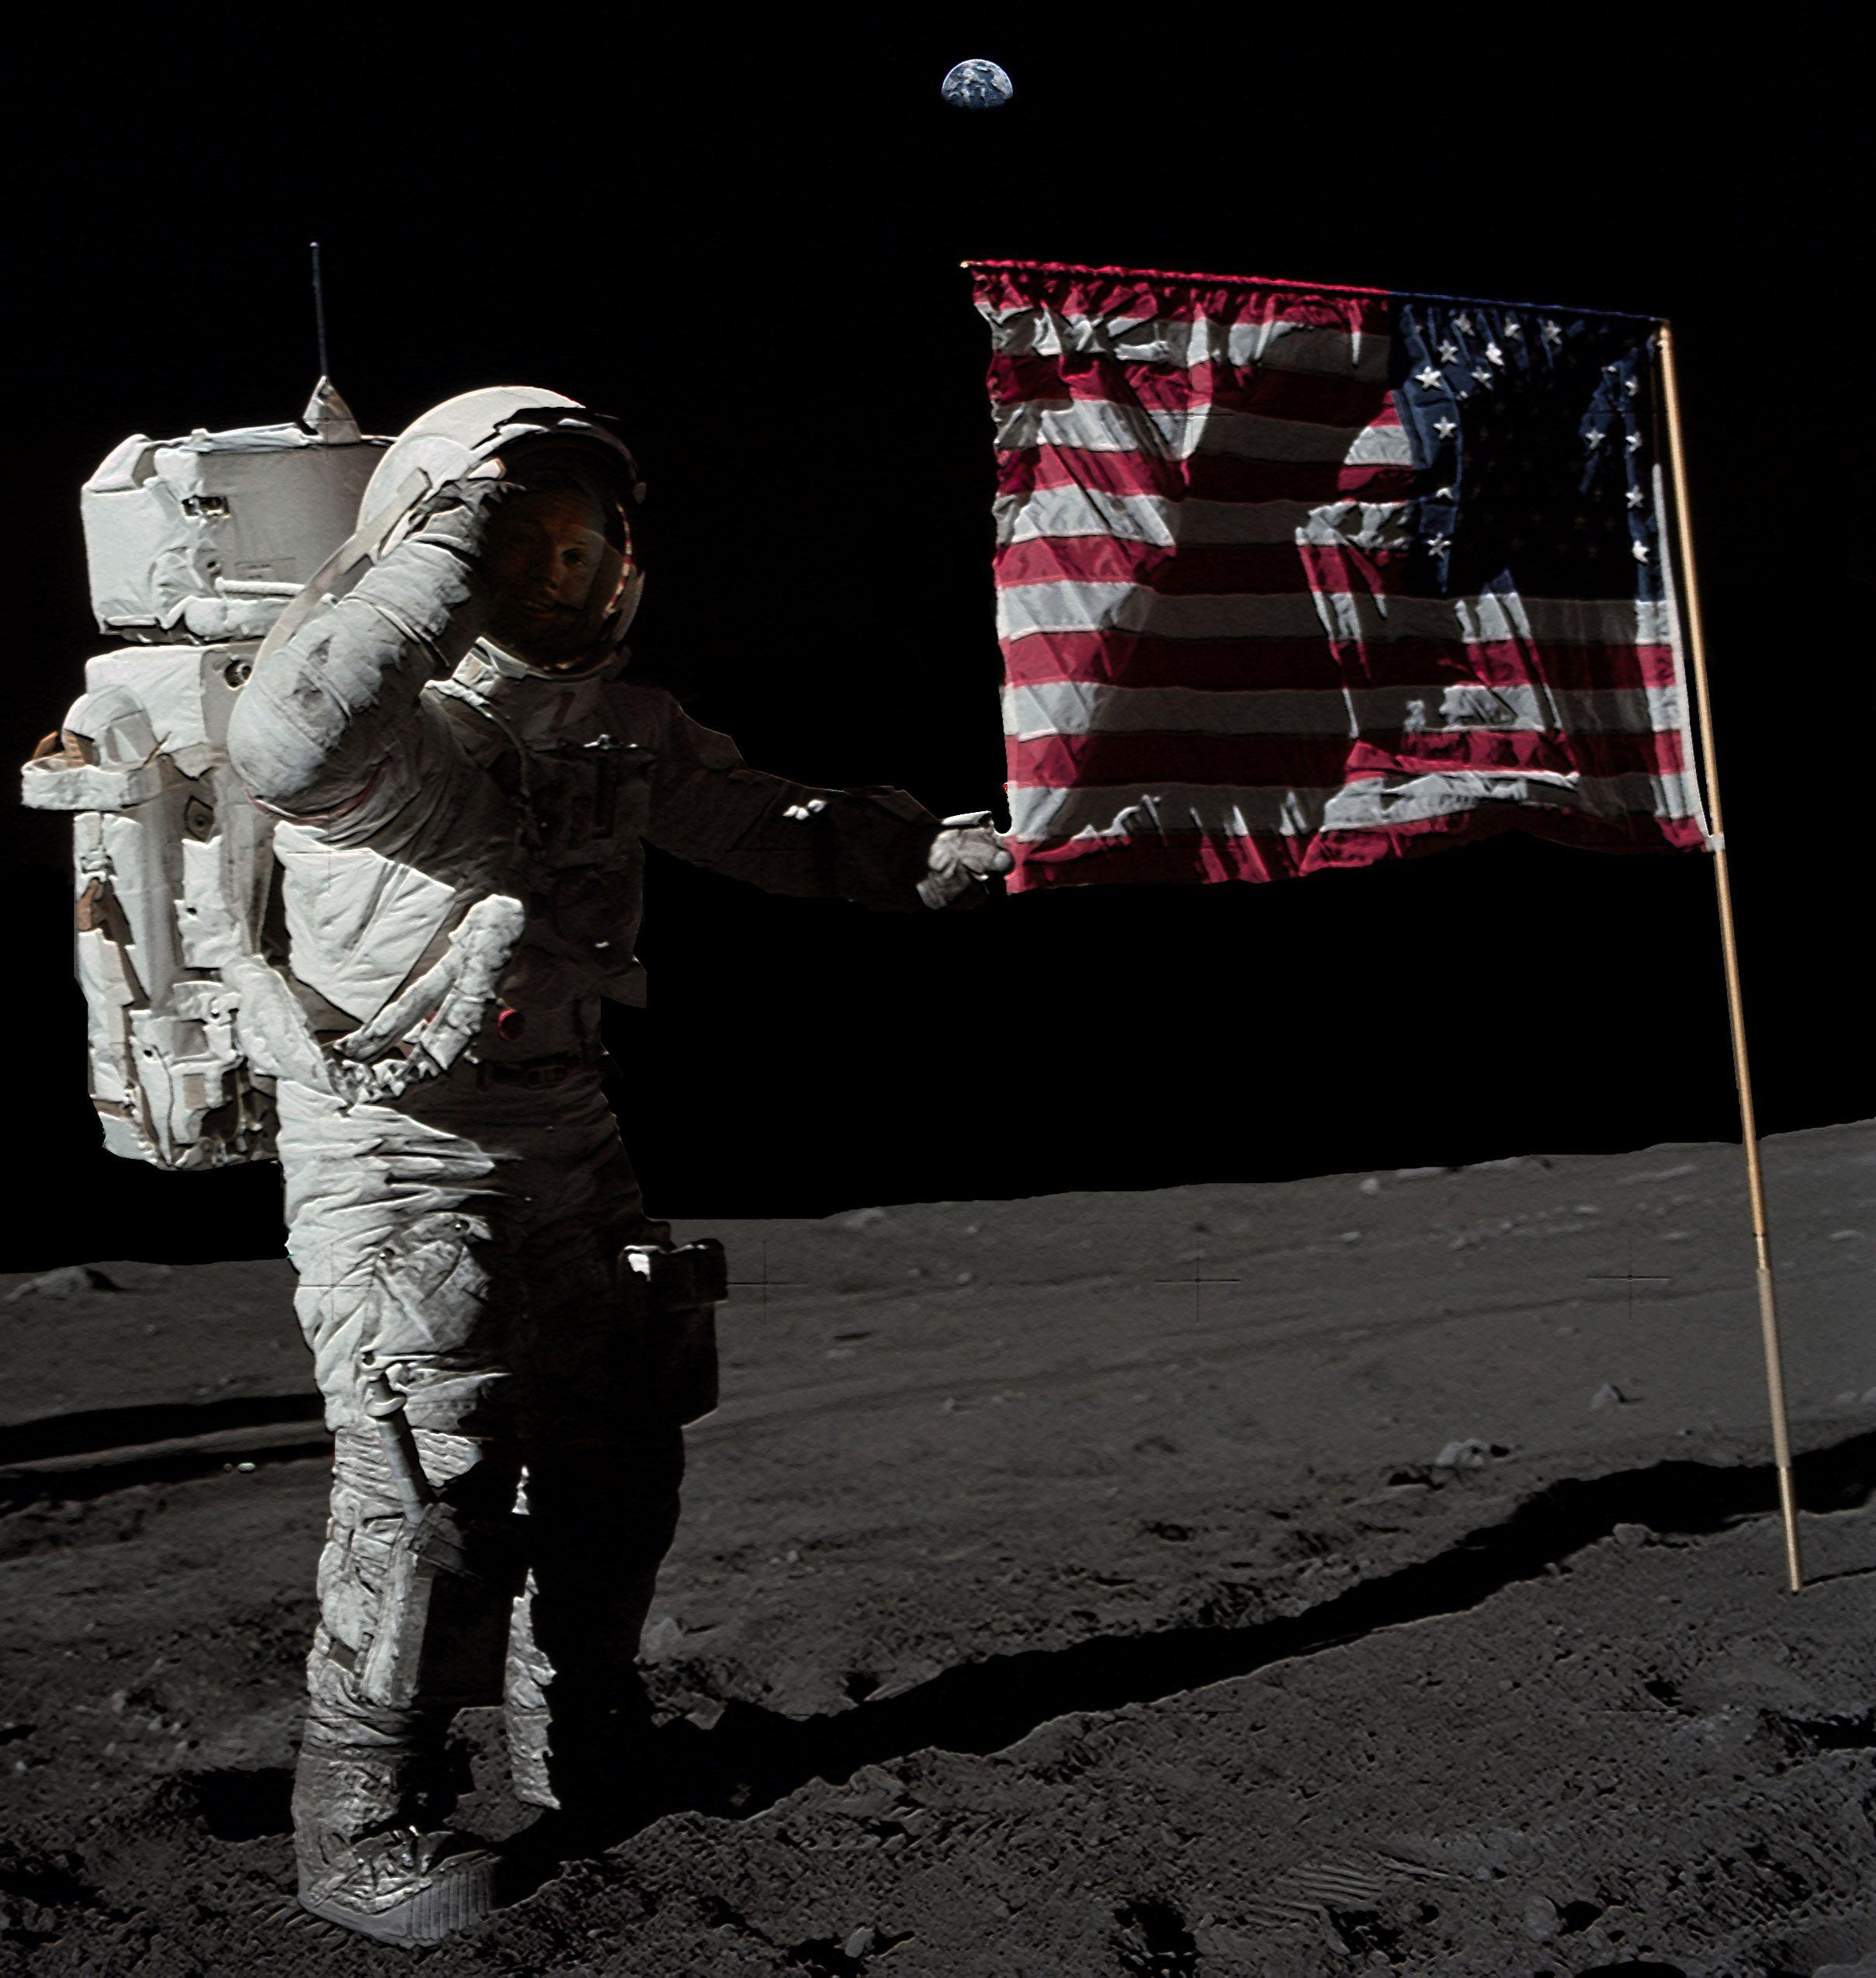 RIP Neil Armstrong, A Huge Loss for Mankind